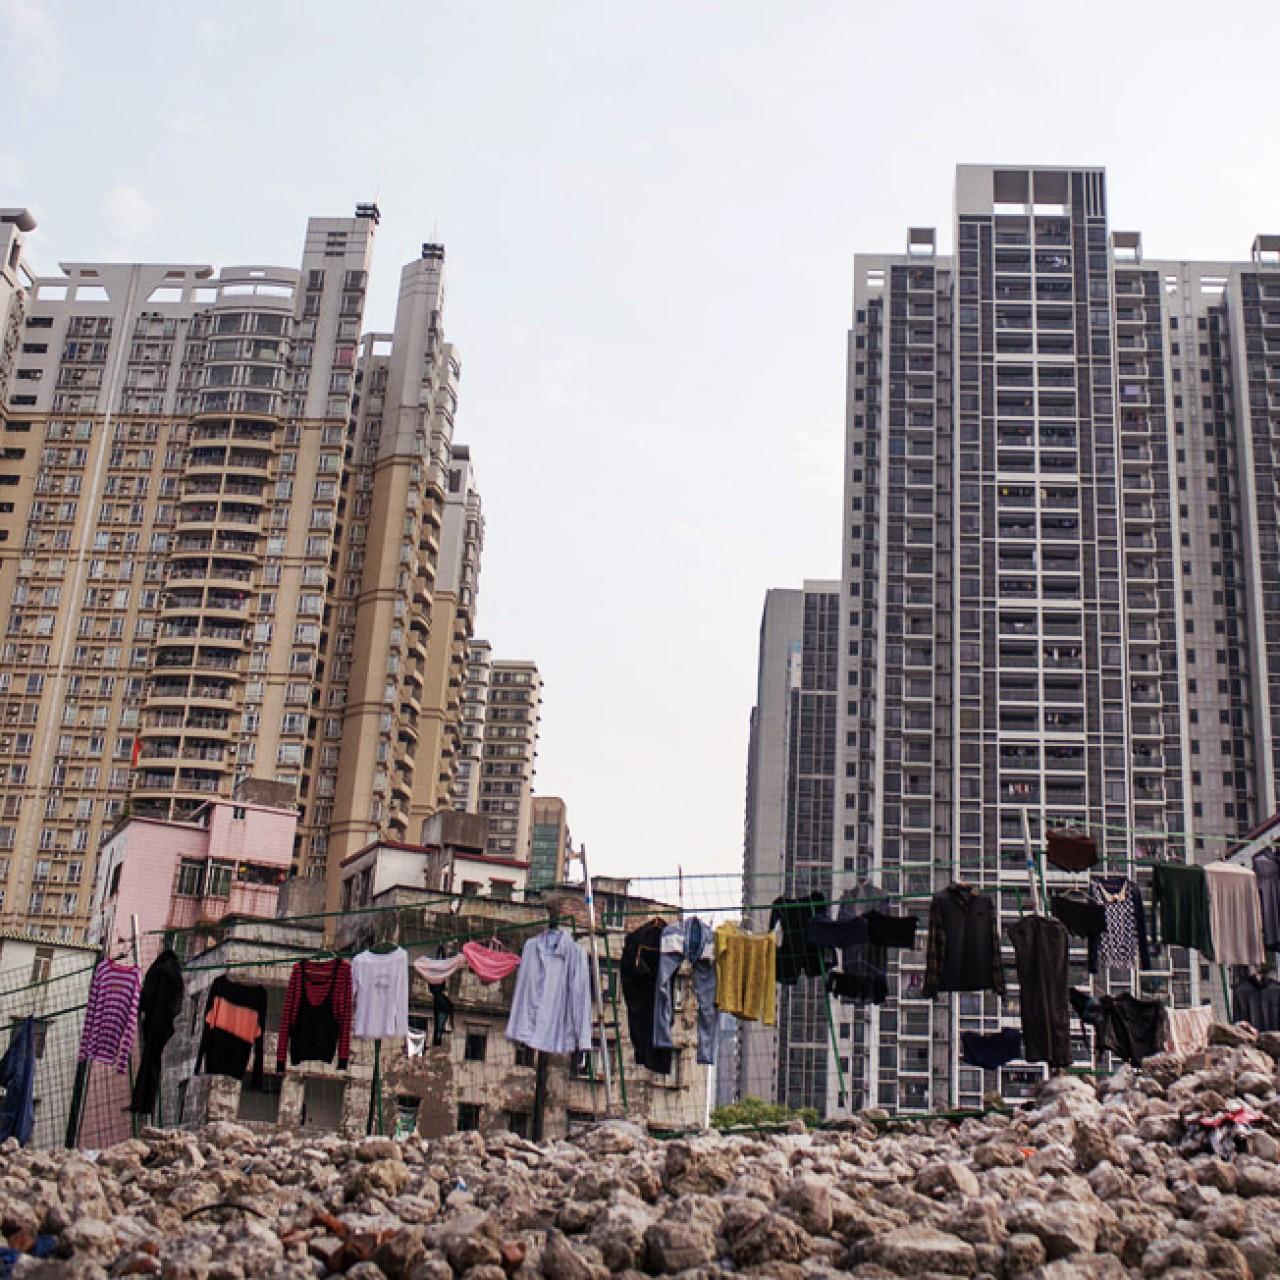 Goodbye old Canton: Guangzhou is booming, but at what cost